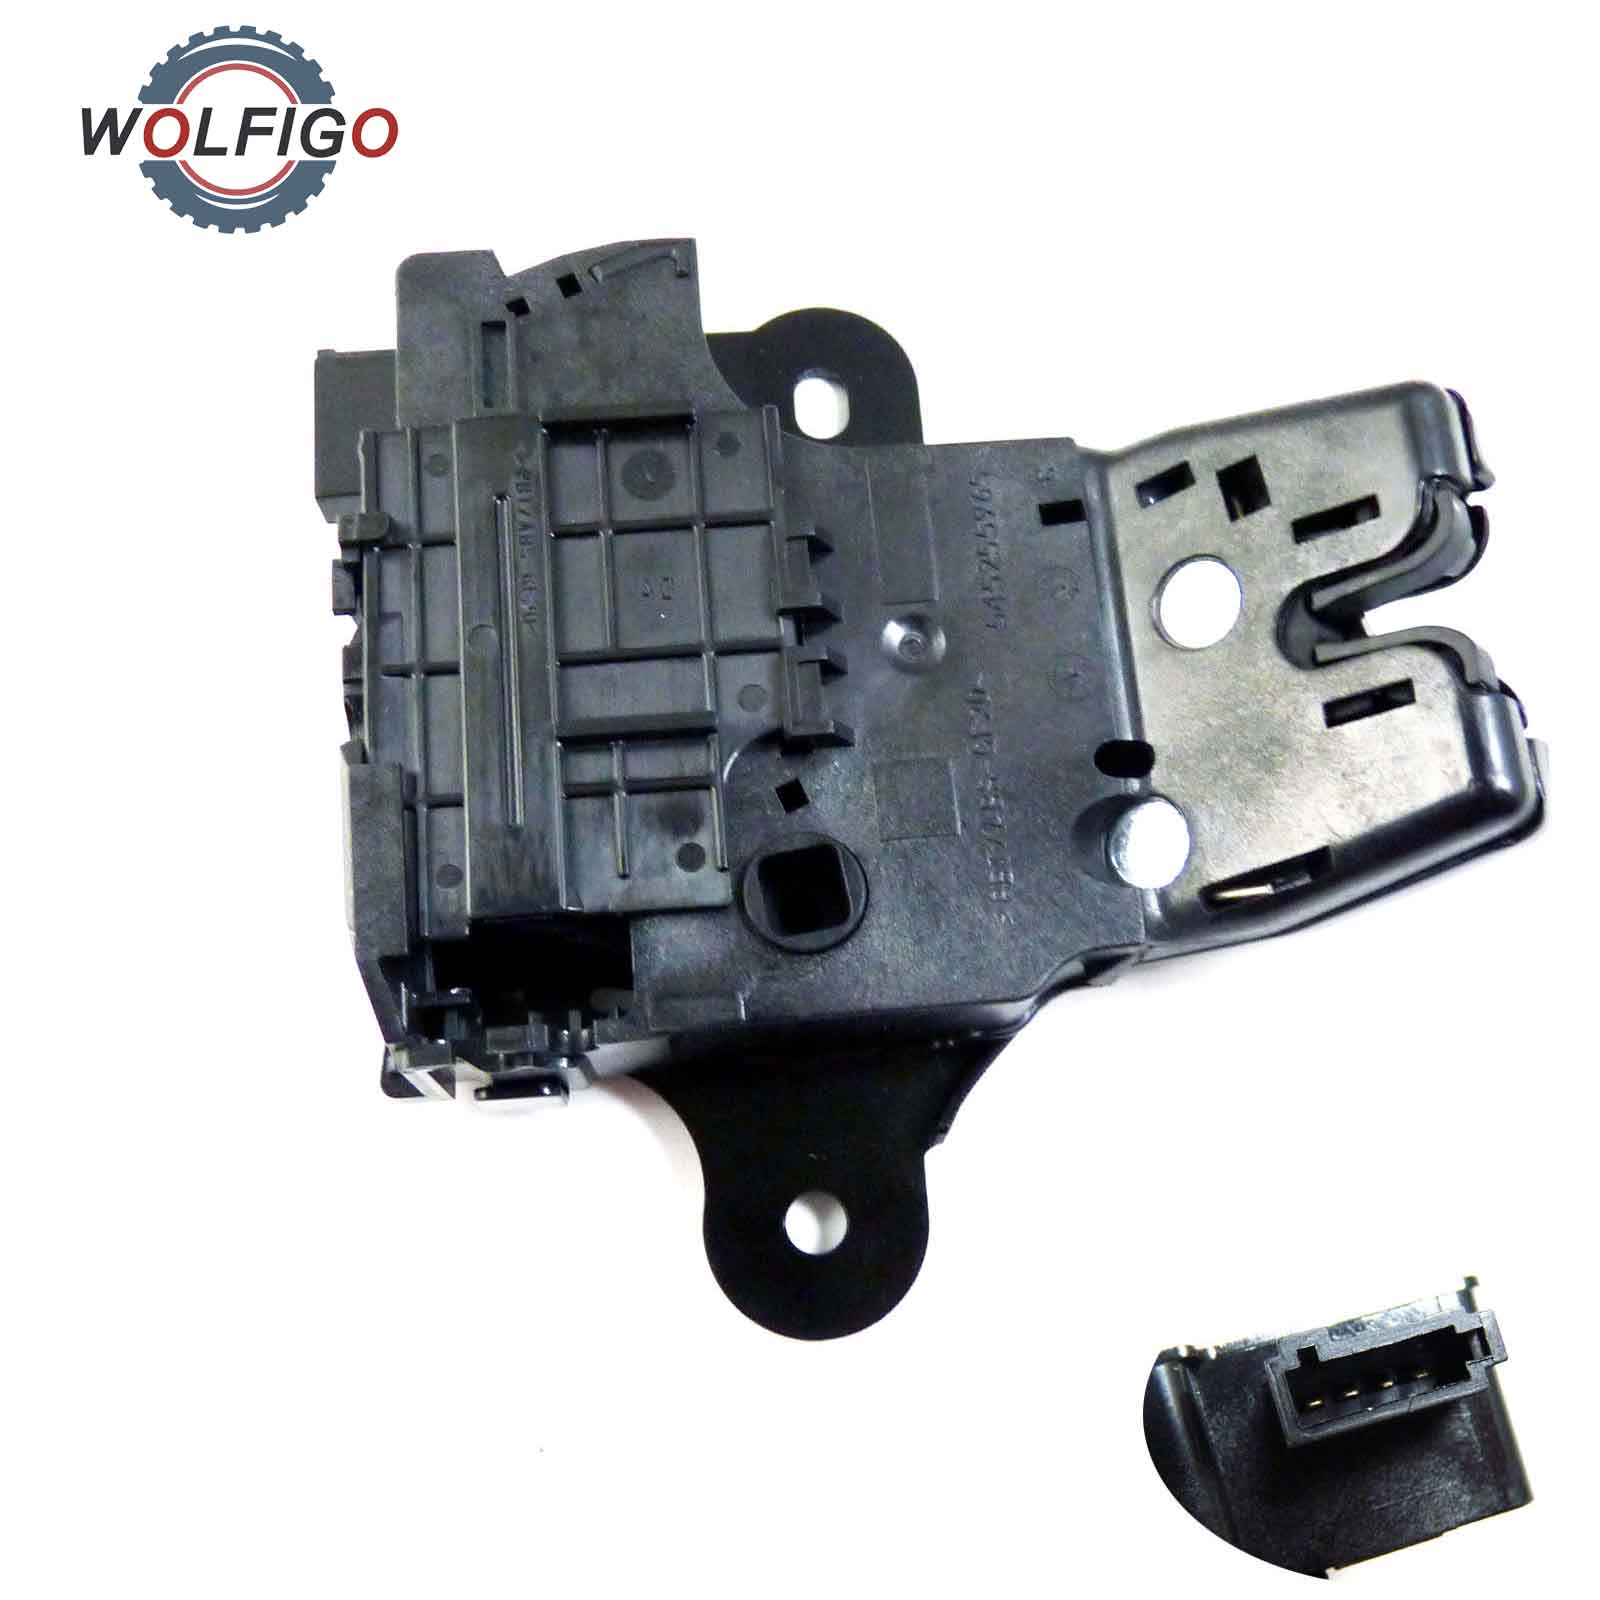 small resolution of wolfigo trunk lock lid latch 13501988 for chery chevrolet malibu camaro sonic curze cadillac cts ats buick regal verano lacrosse in trunk lids parts from